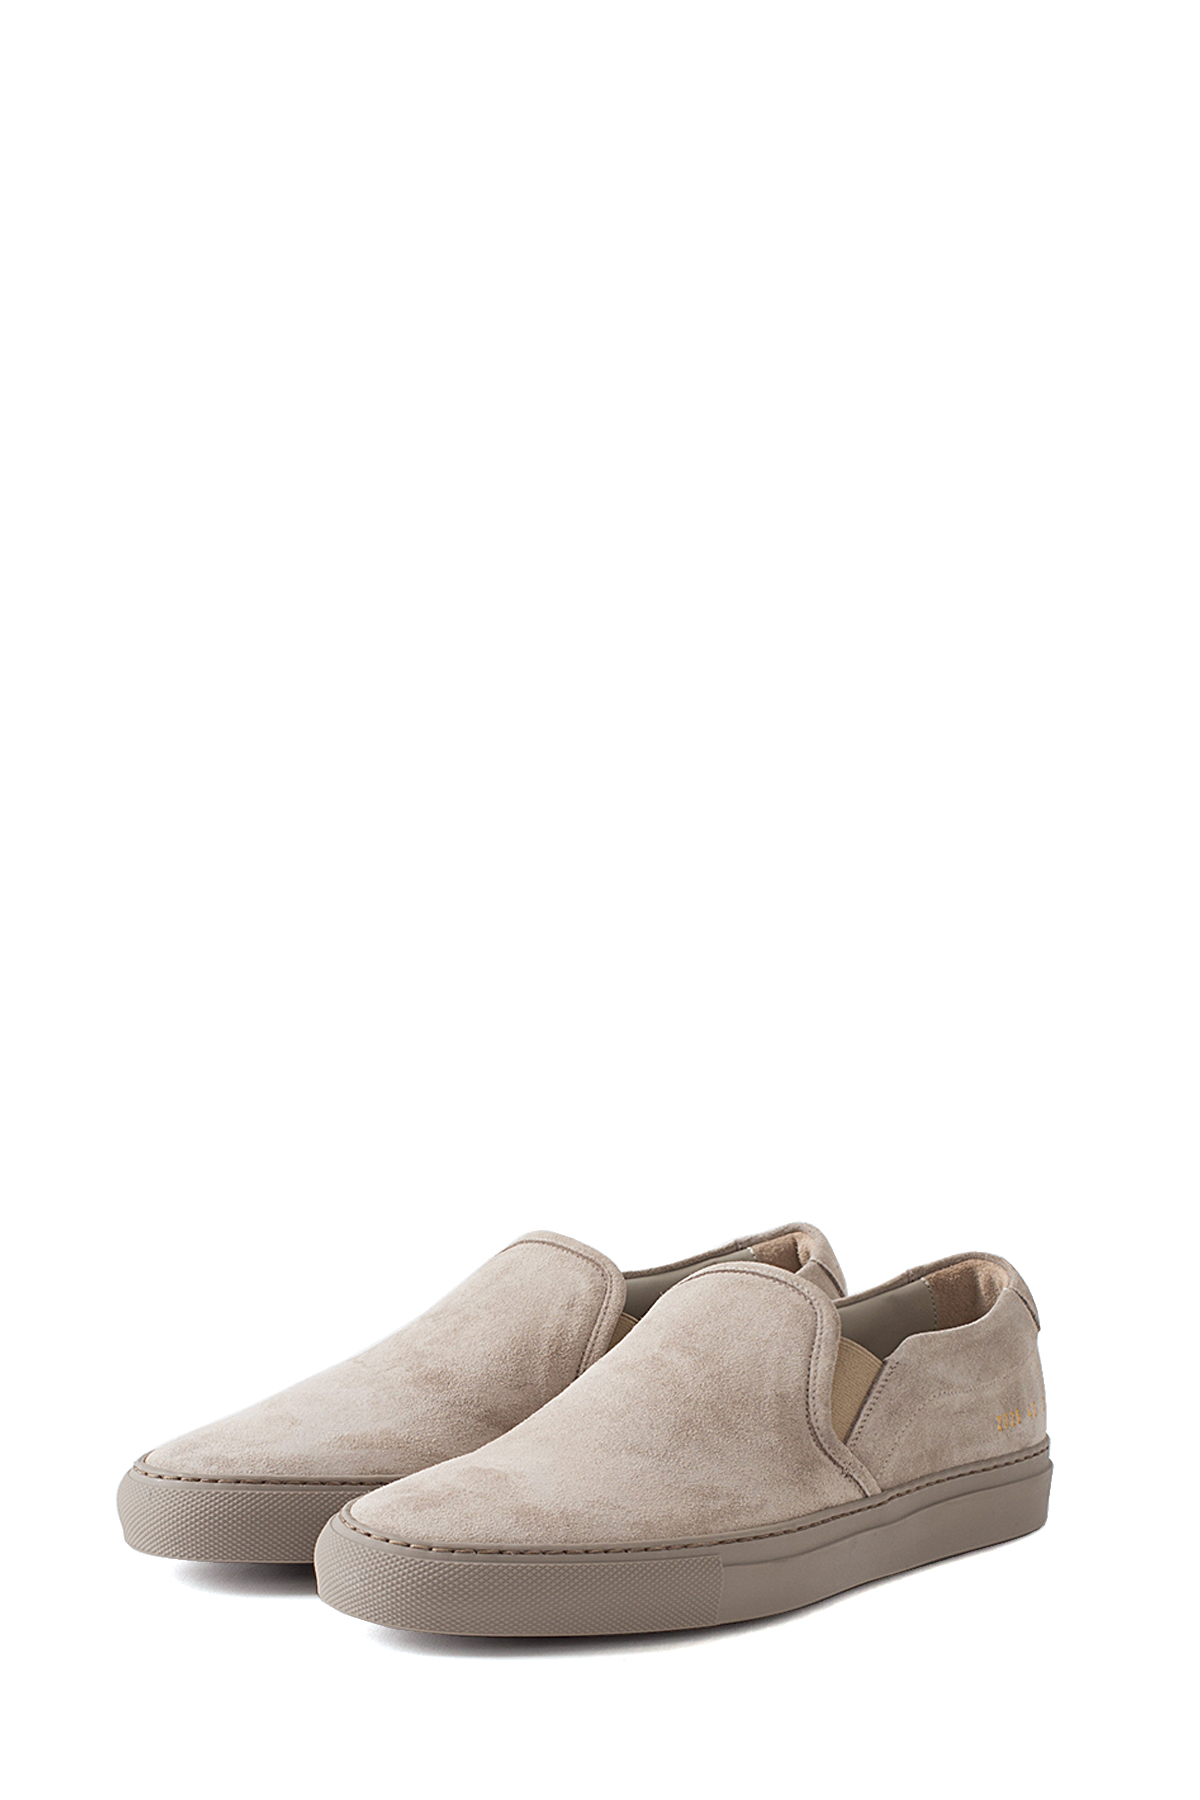 Common Projects : Slip On in Suede (Sand)